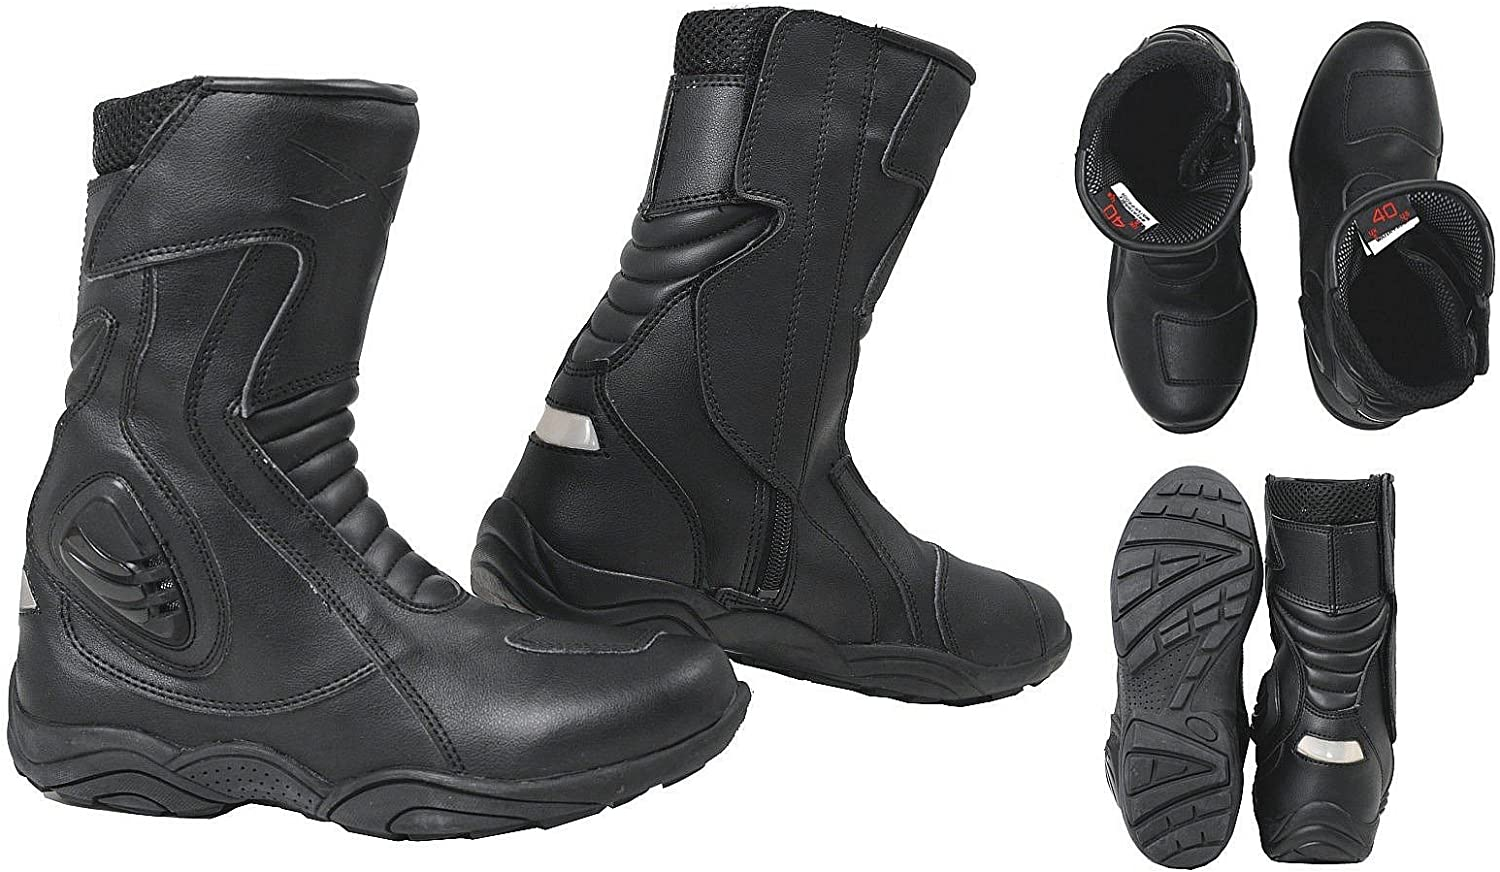 Under blast sales Touring Motorcycle Quad Leather Apparel Oakland Mall Sonicmot Boots Road Race